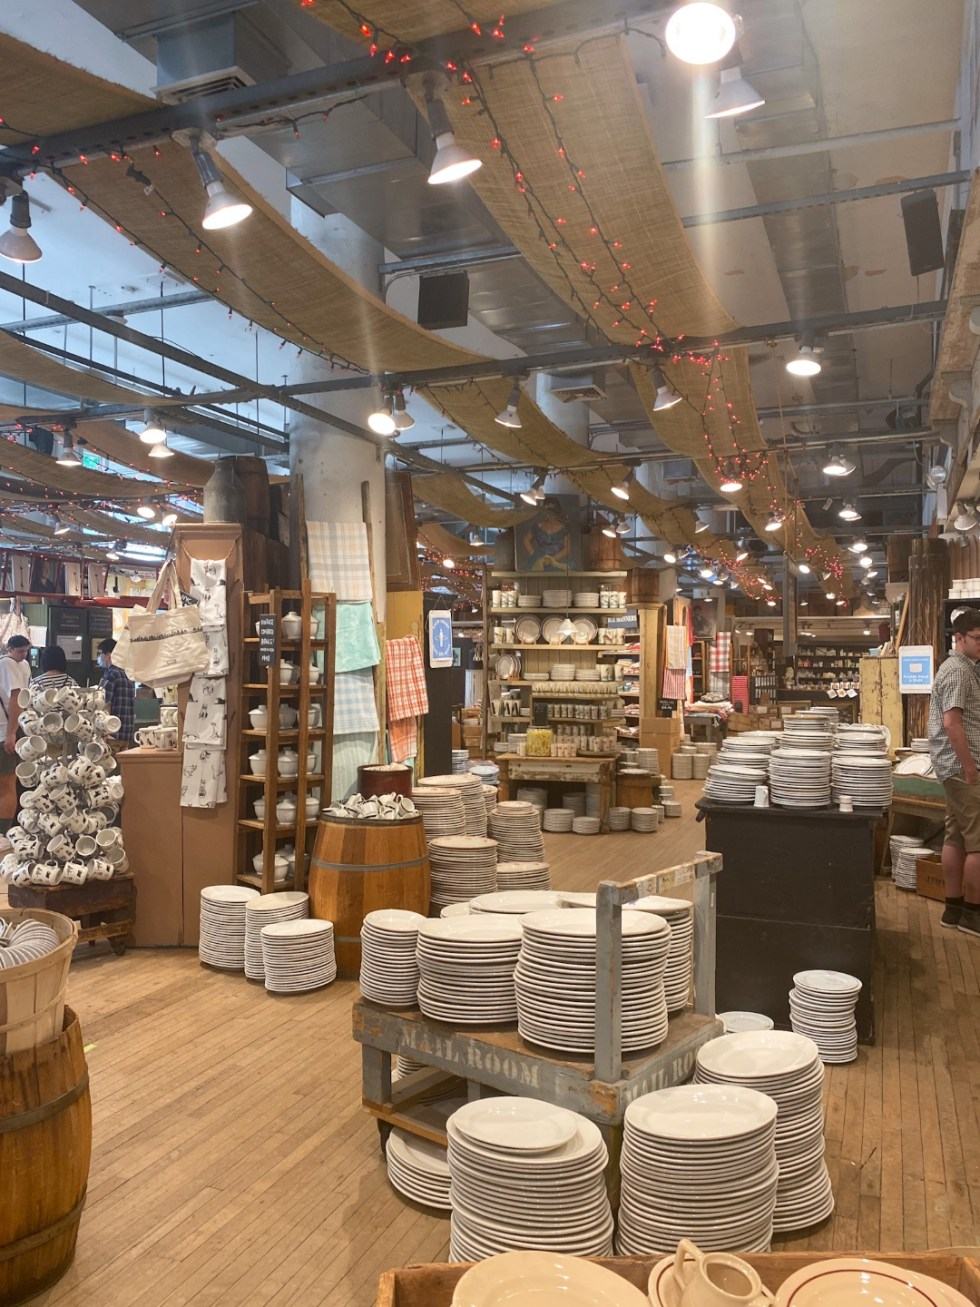 NYC Summer Weekend: Things to Do in NYC in the Summer - I'm Fixin' To - @imfixintoblog   NYC Summer Weekend by popular NC travel blog, I'm Fixin' To: image of ceramic dishes.